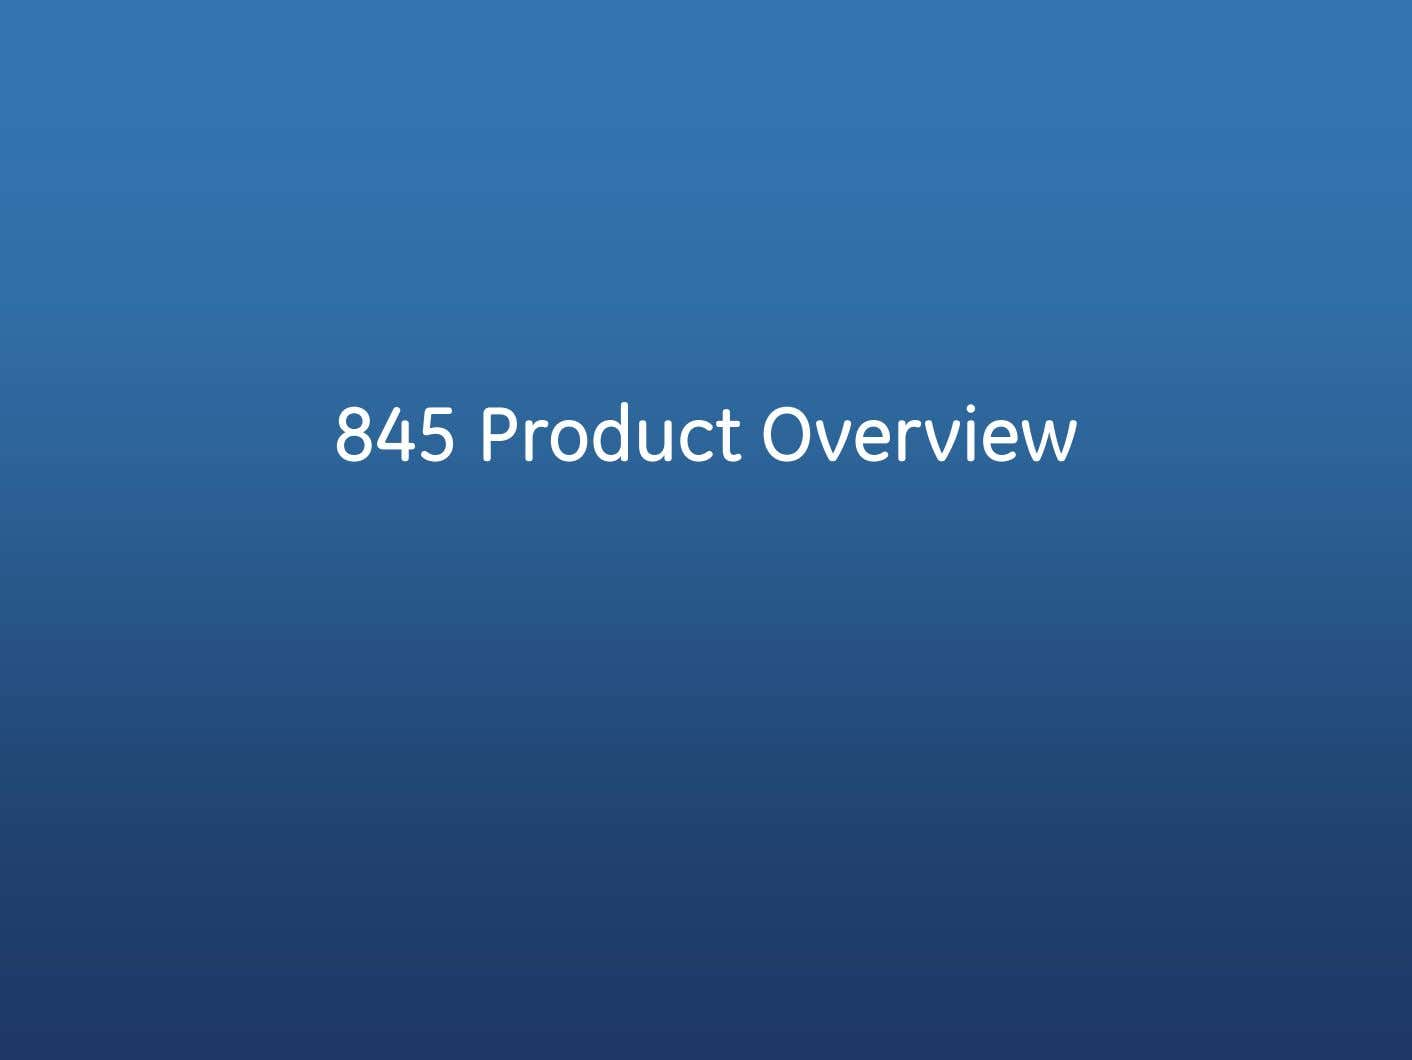 845 Product Overview